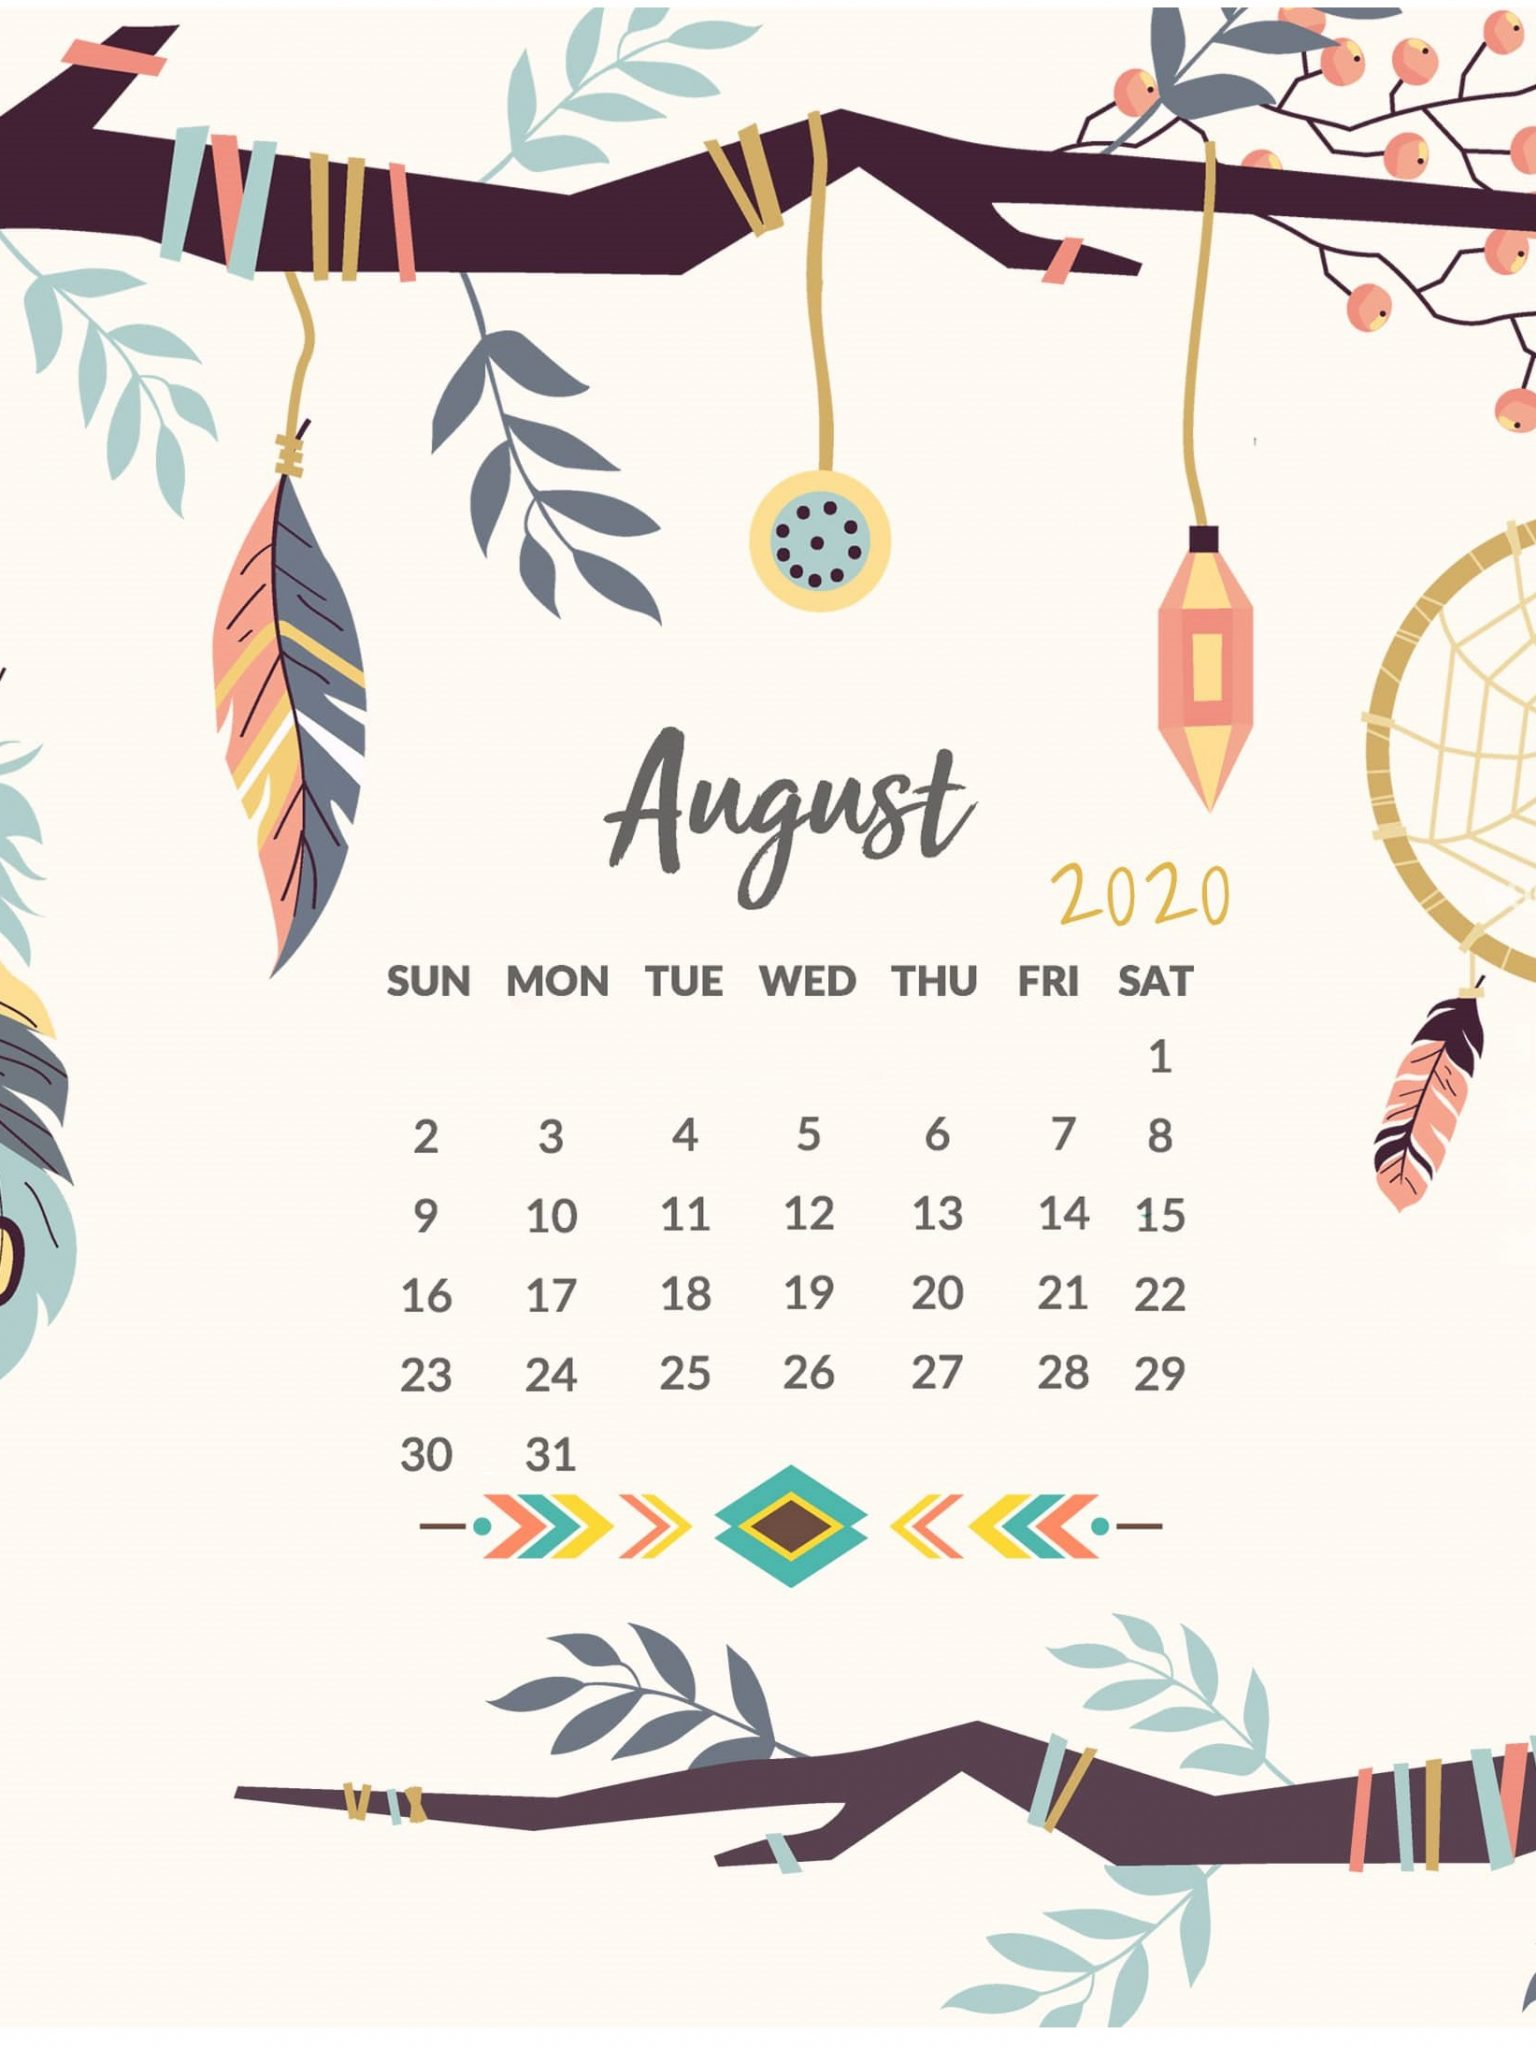 August 2020 Calendar Wallpaper for iPhone